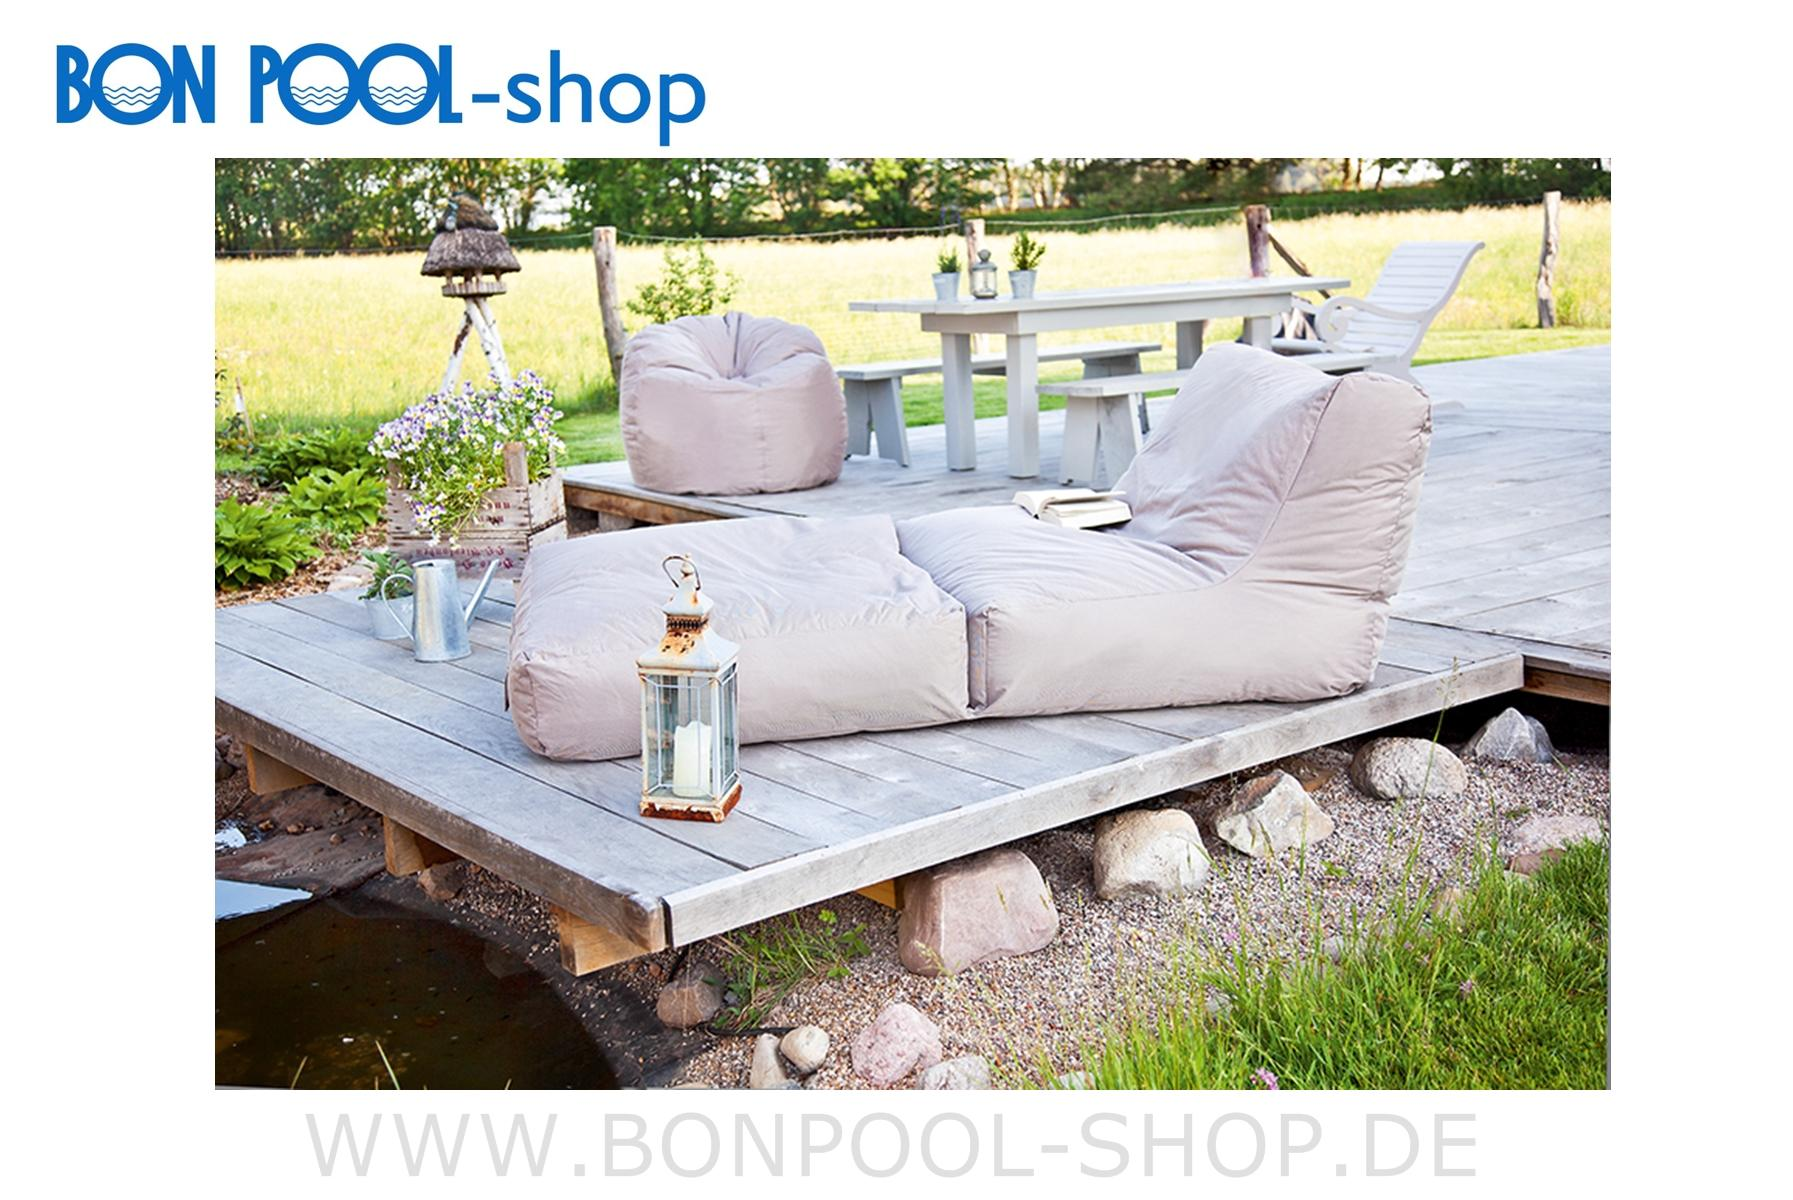 outbag peak cappuccino gartenm bel bon pool. Black Bedroom Furniture Sets. Home Design Ideas